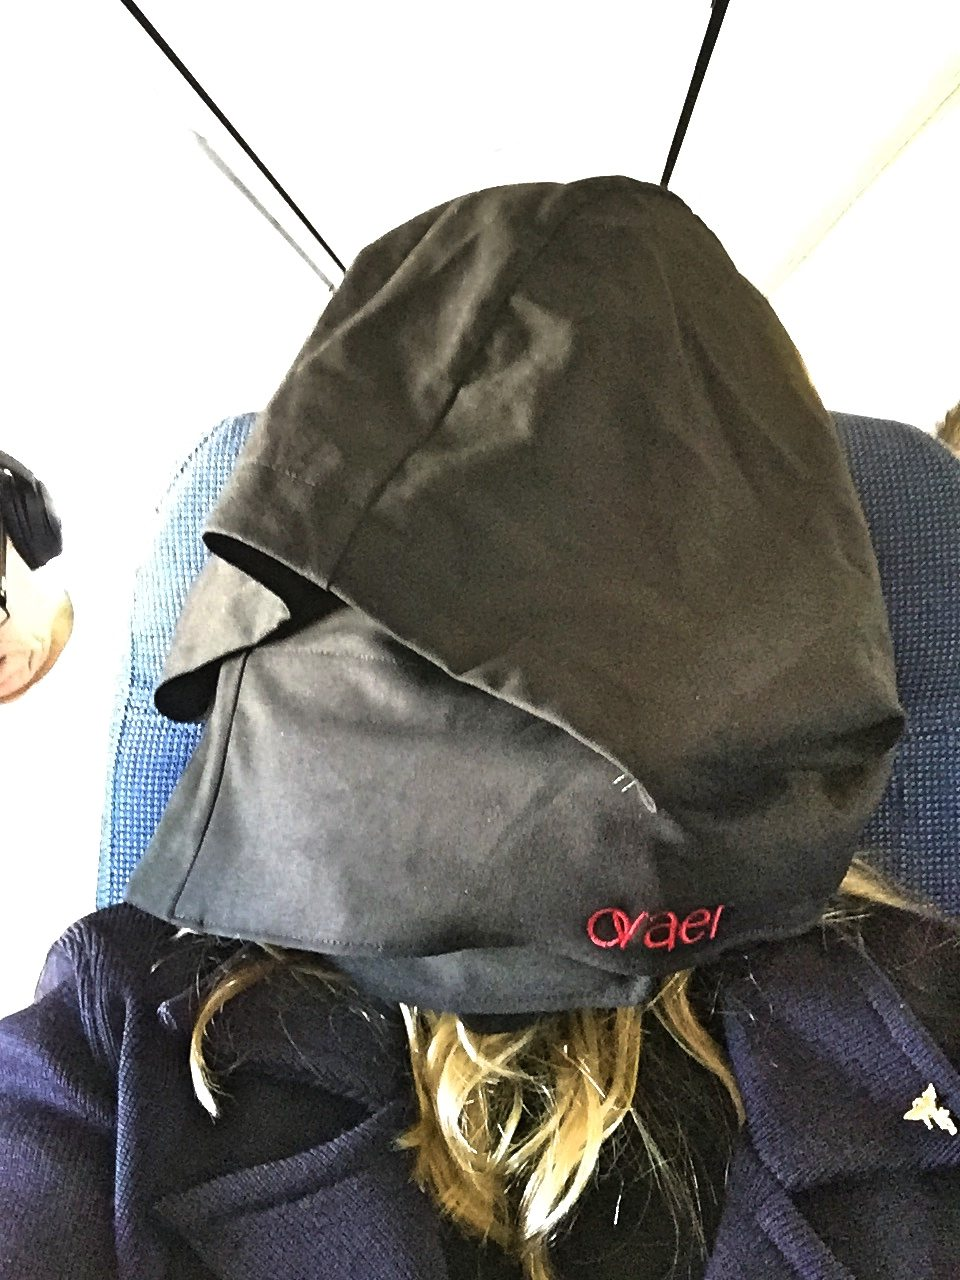 A picture of me wearing the neck pillow and hoodie and completely covering my face